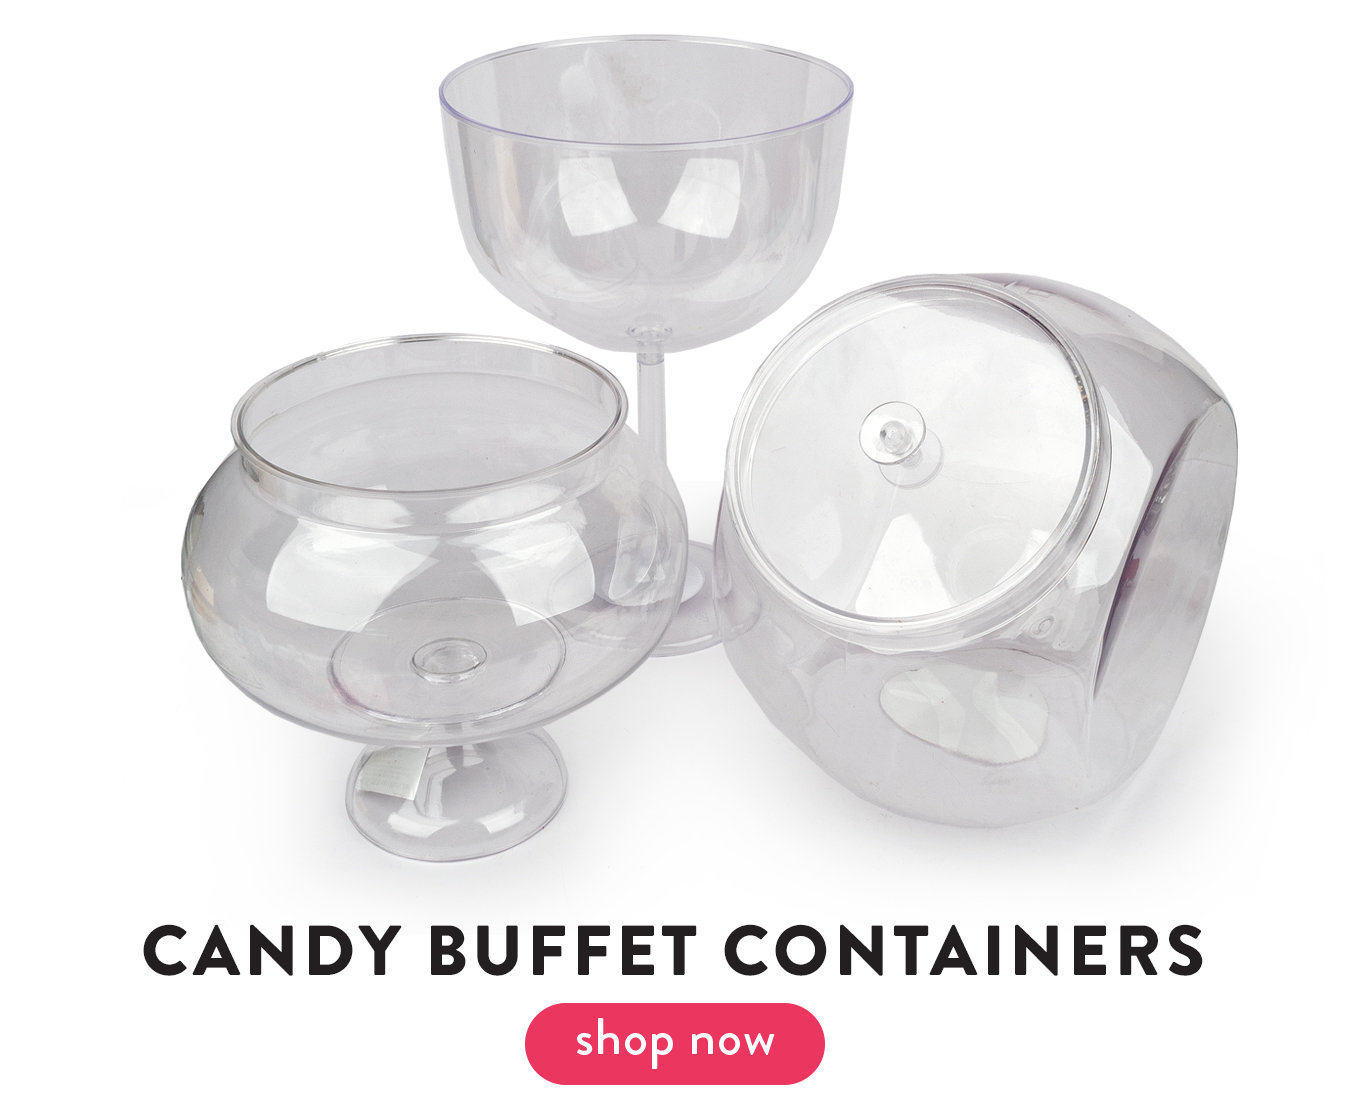 candy buffet containers